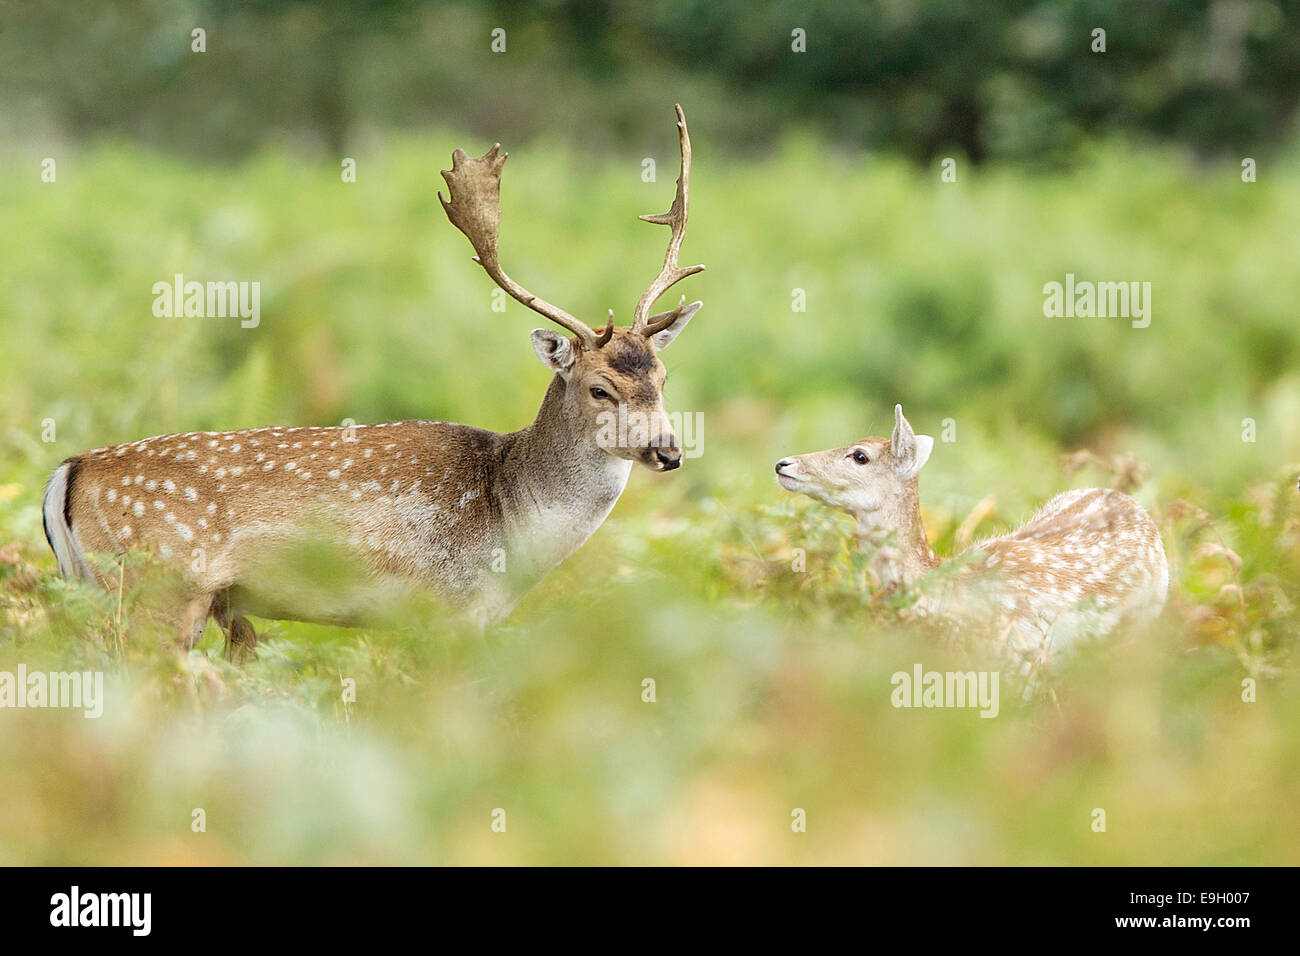 Fallow Deer (Dam dama) stag interacting with a fawn during the annual rut - Stock Image